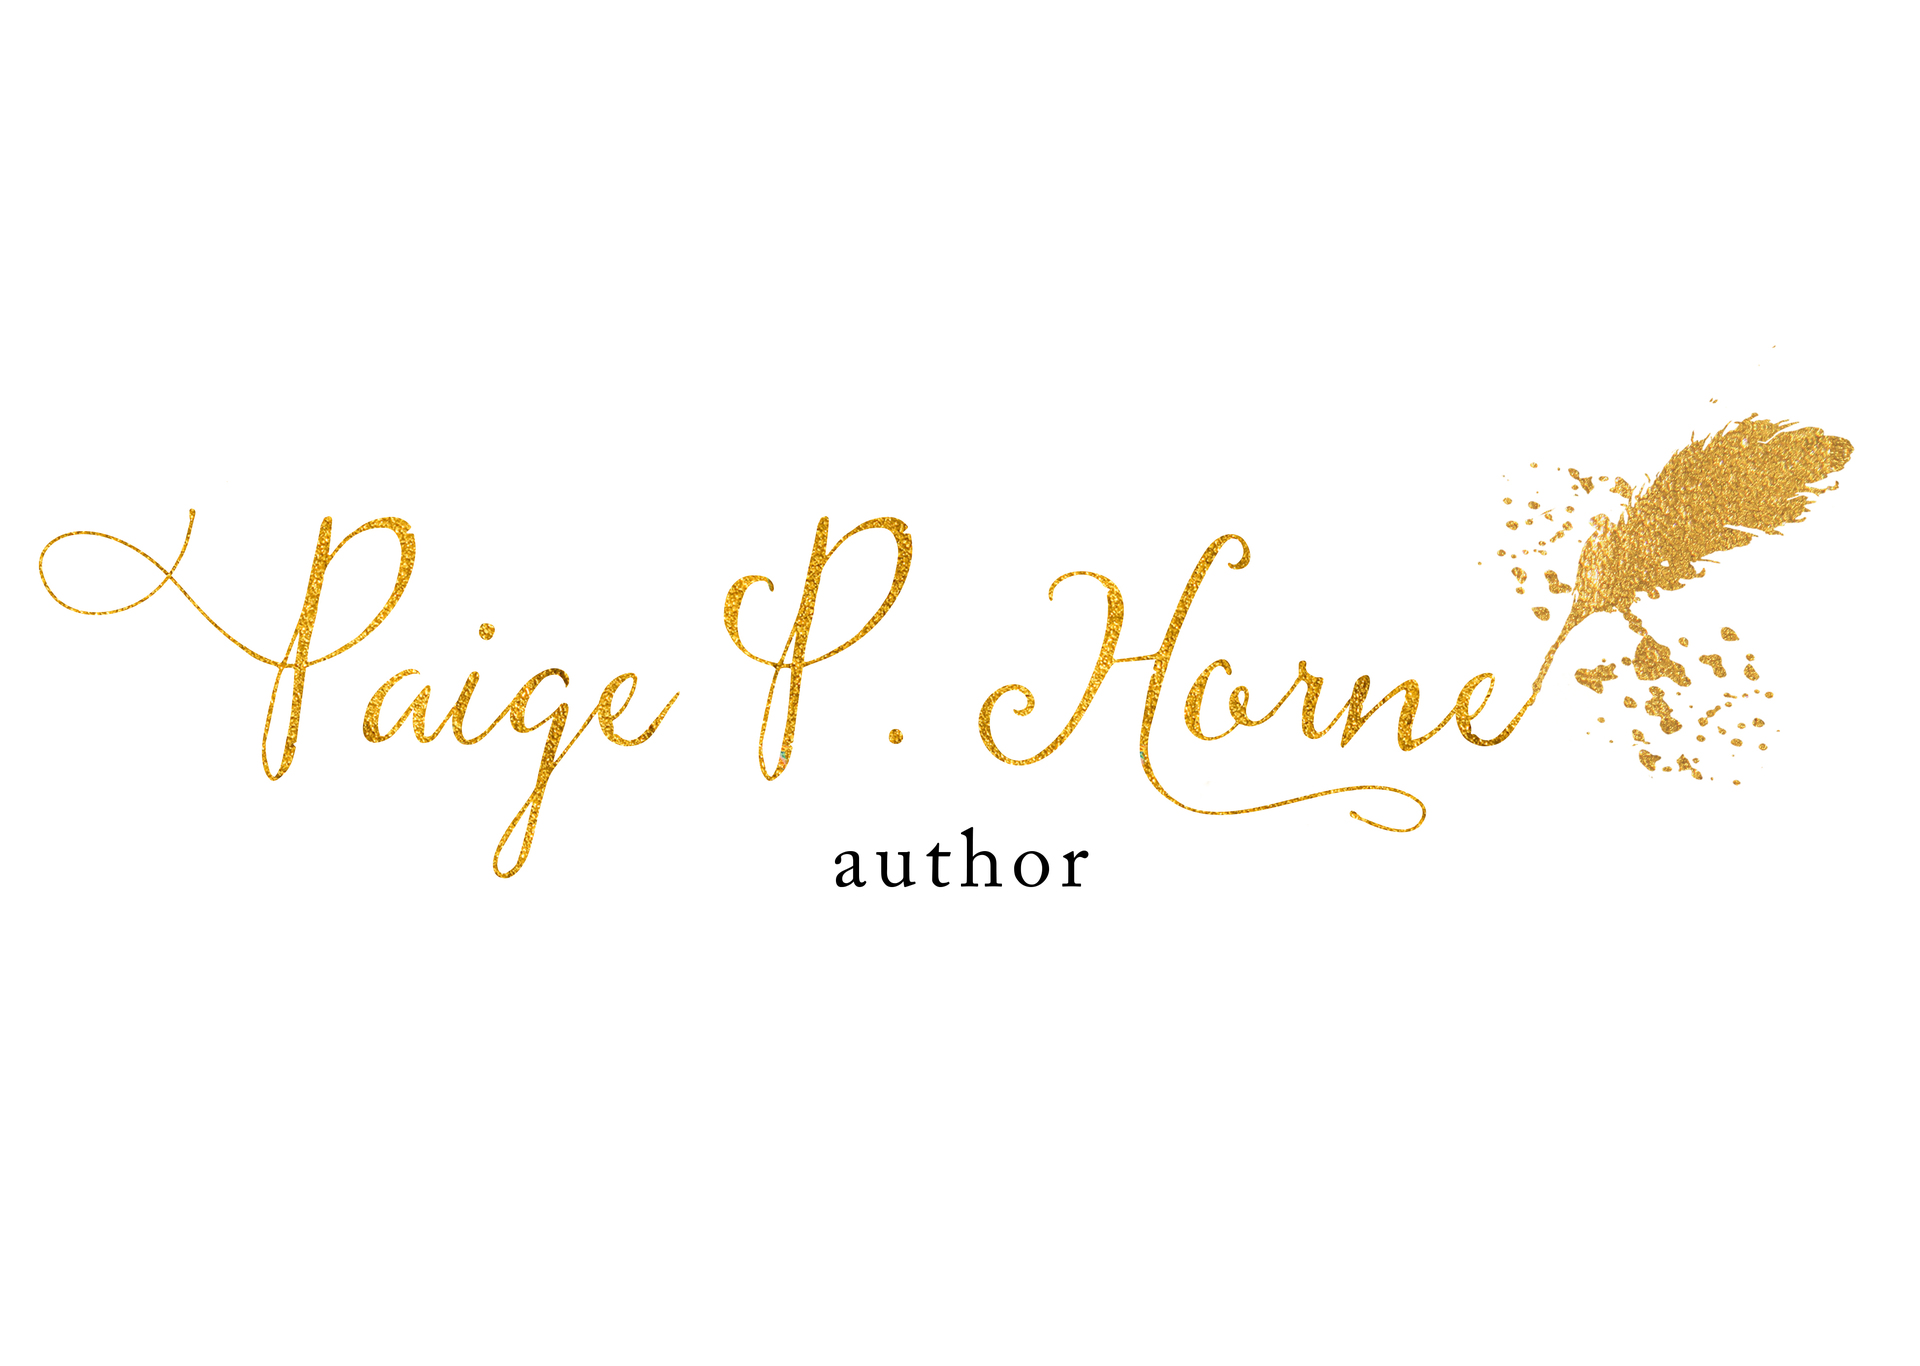 Paige-Turners Merch Store